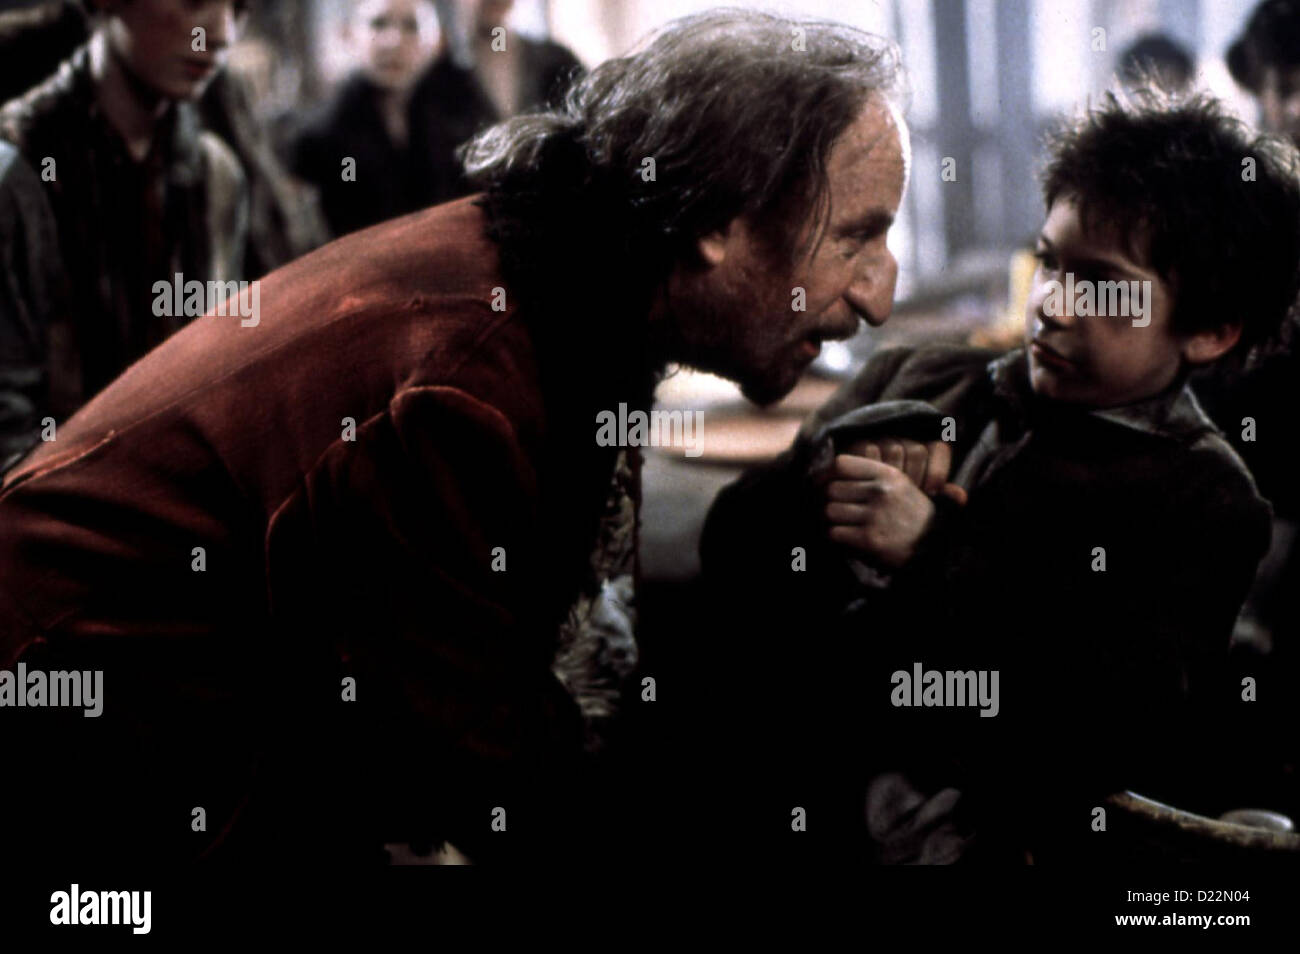 fagin oliver twist stock photos fagin oliver twist stock images oliver twist fagin richard dreyfuss oliver twist alex trench